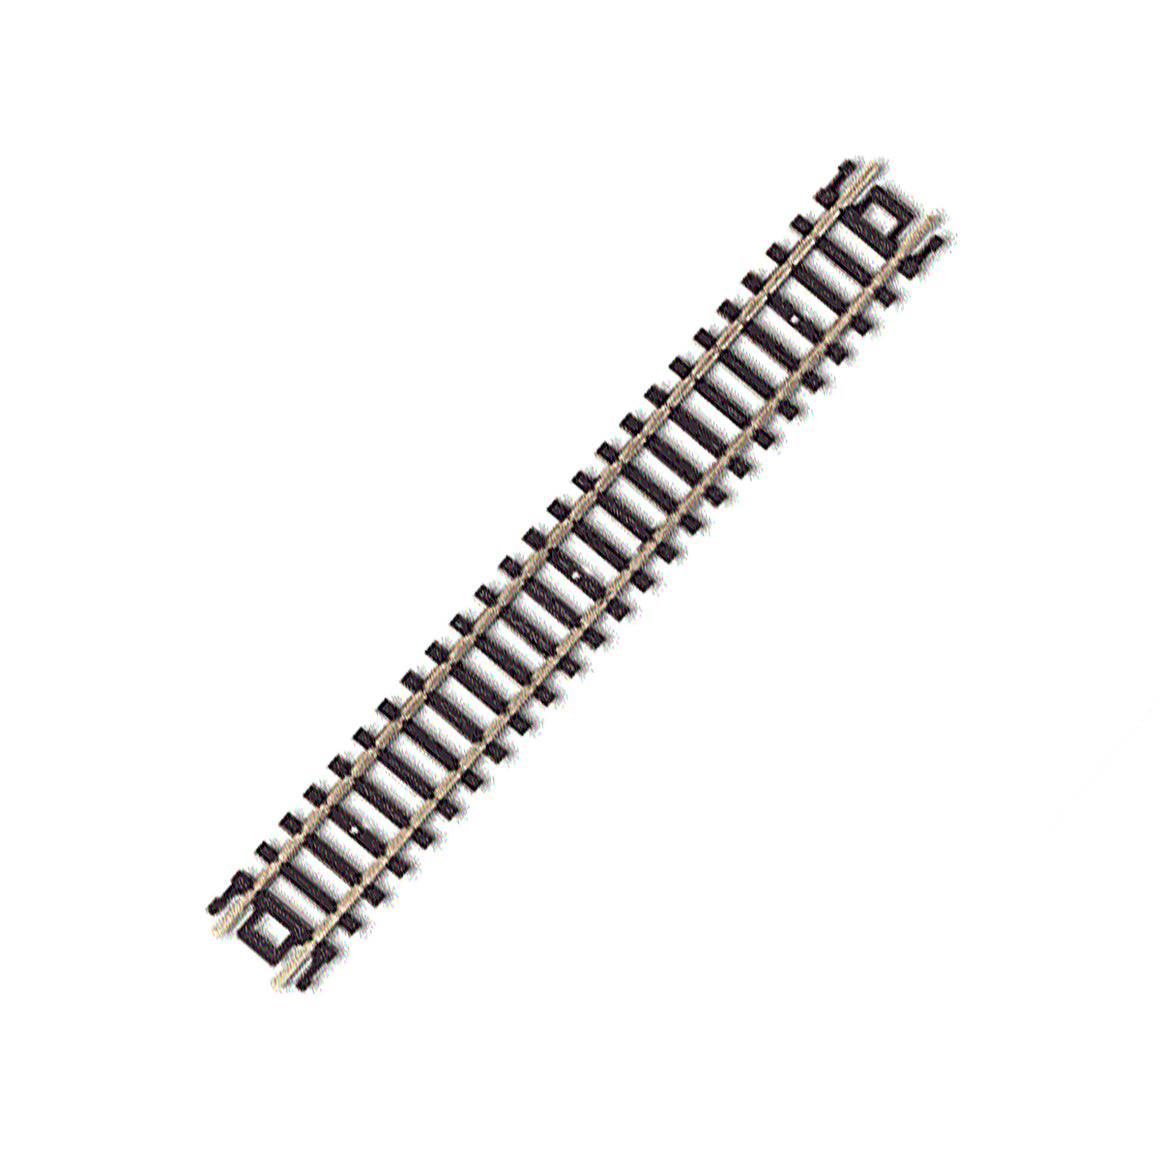 N Scale: Code 80 Snap Track - Straight Pieces